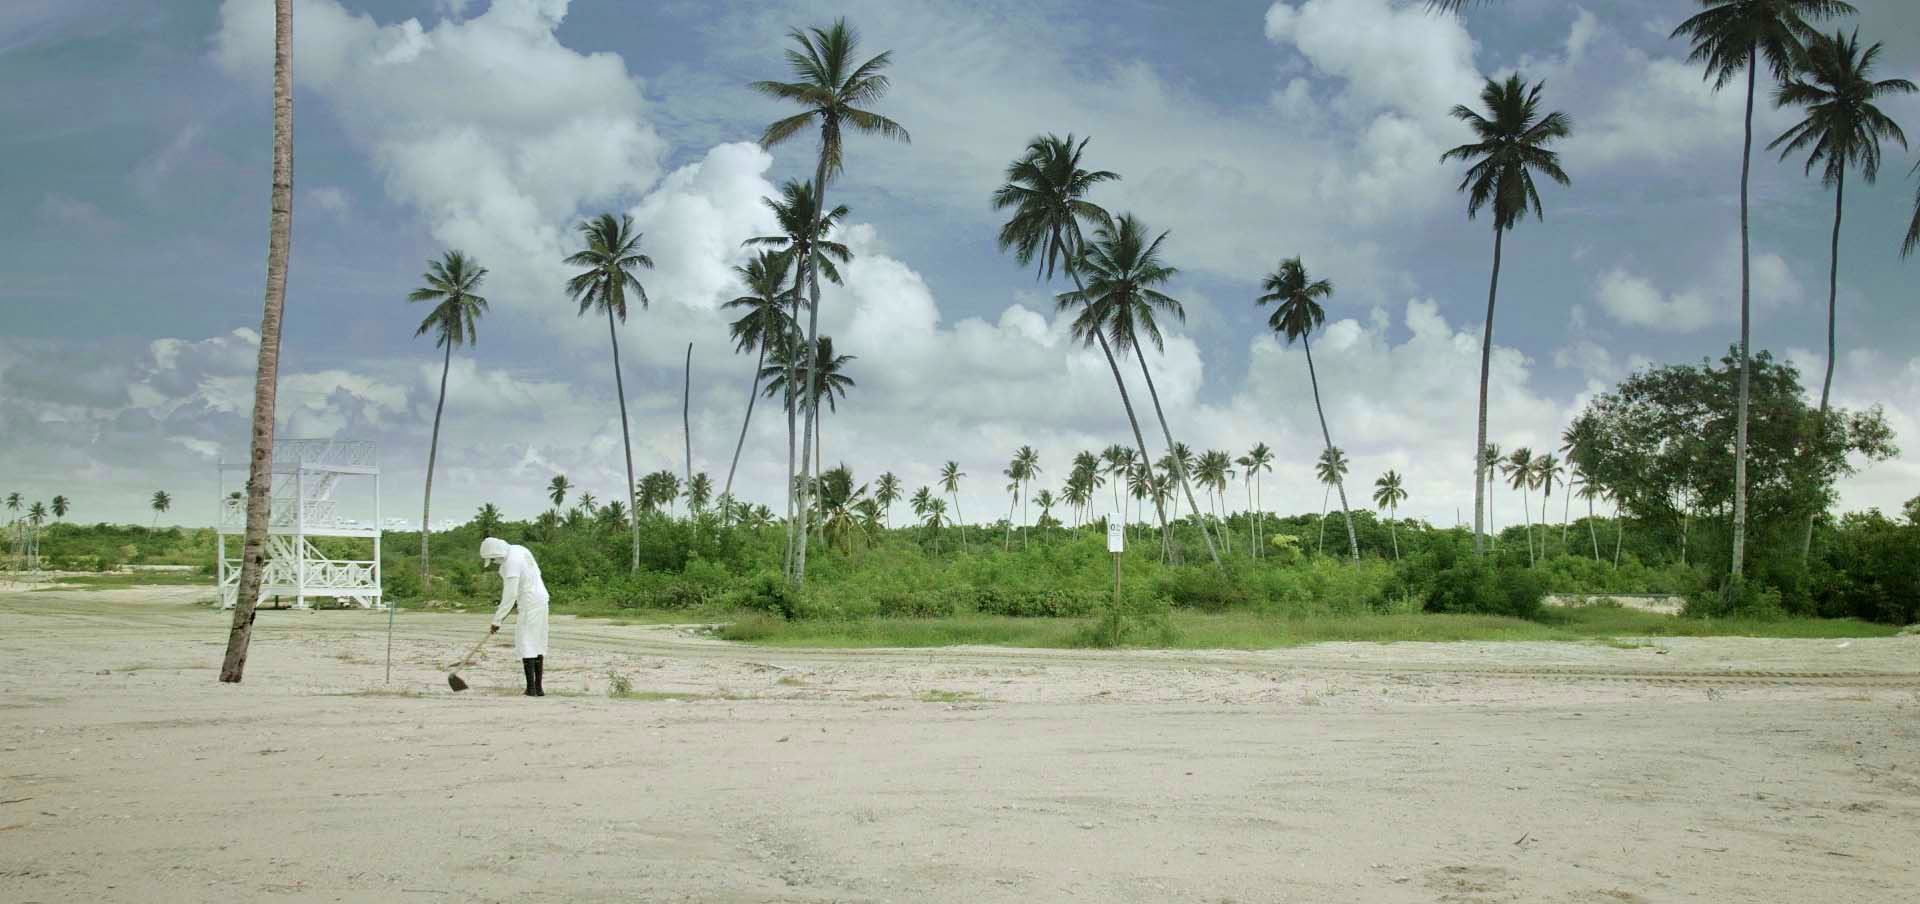 A worker in a construction site in a Domincan Republic beach in the documentary Site of Sites